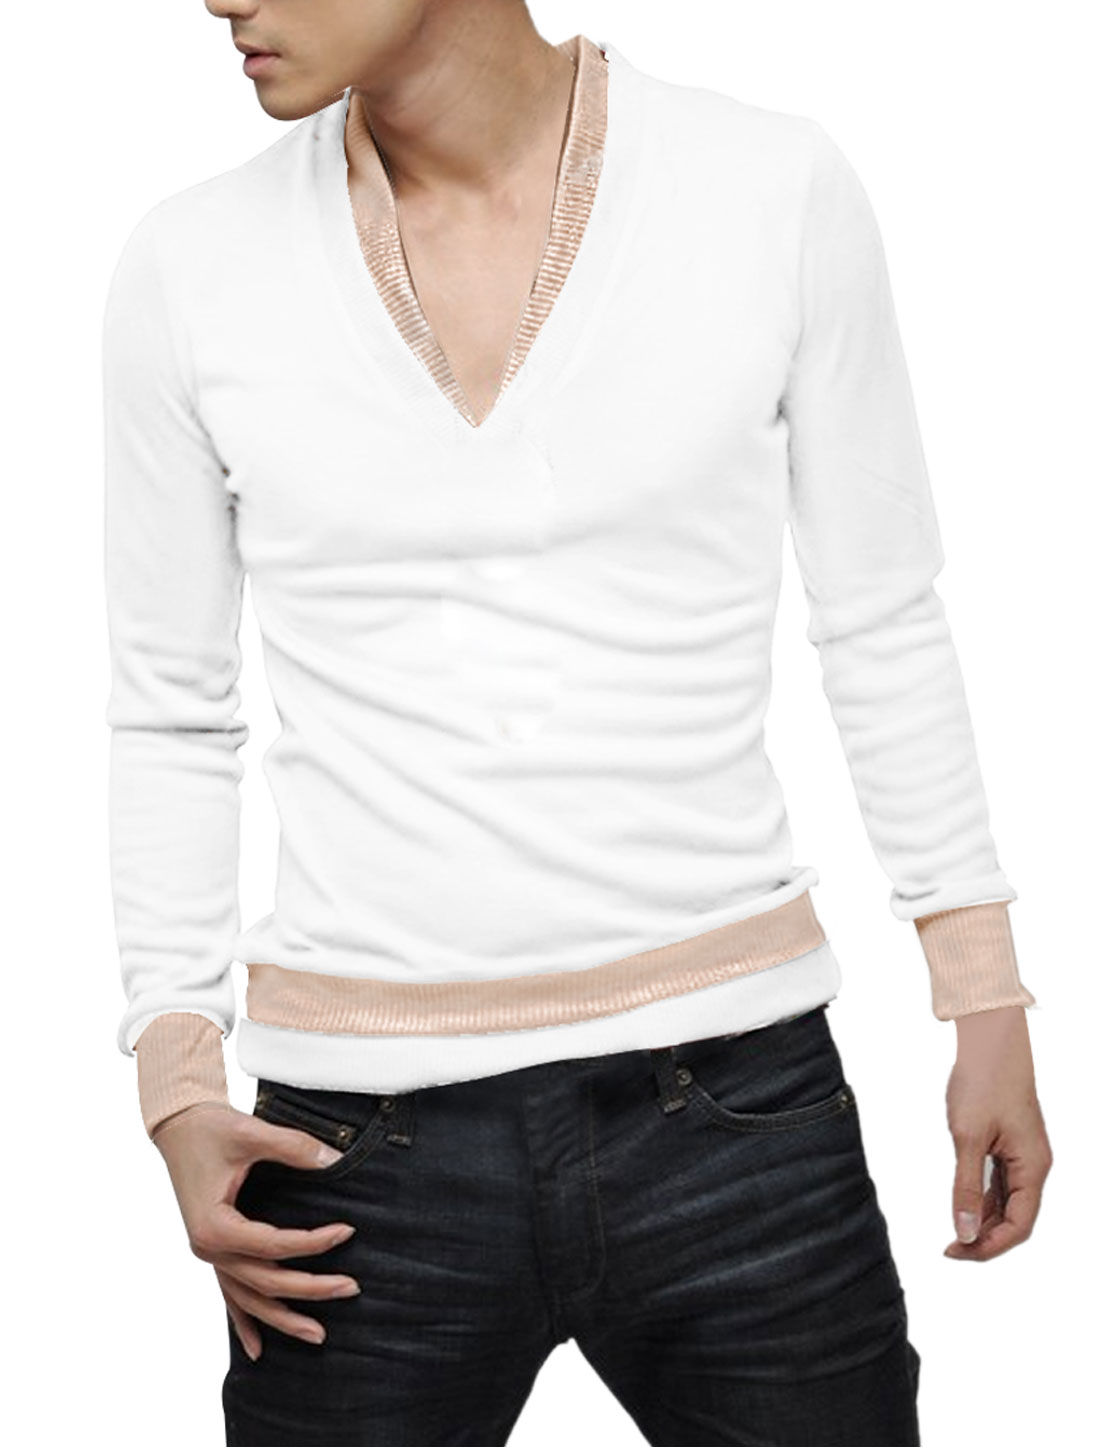 Men White V Neckline Long Sleeve Simple Style Stretch Ribbing Hem Slim Top Shirt XS